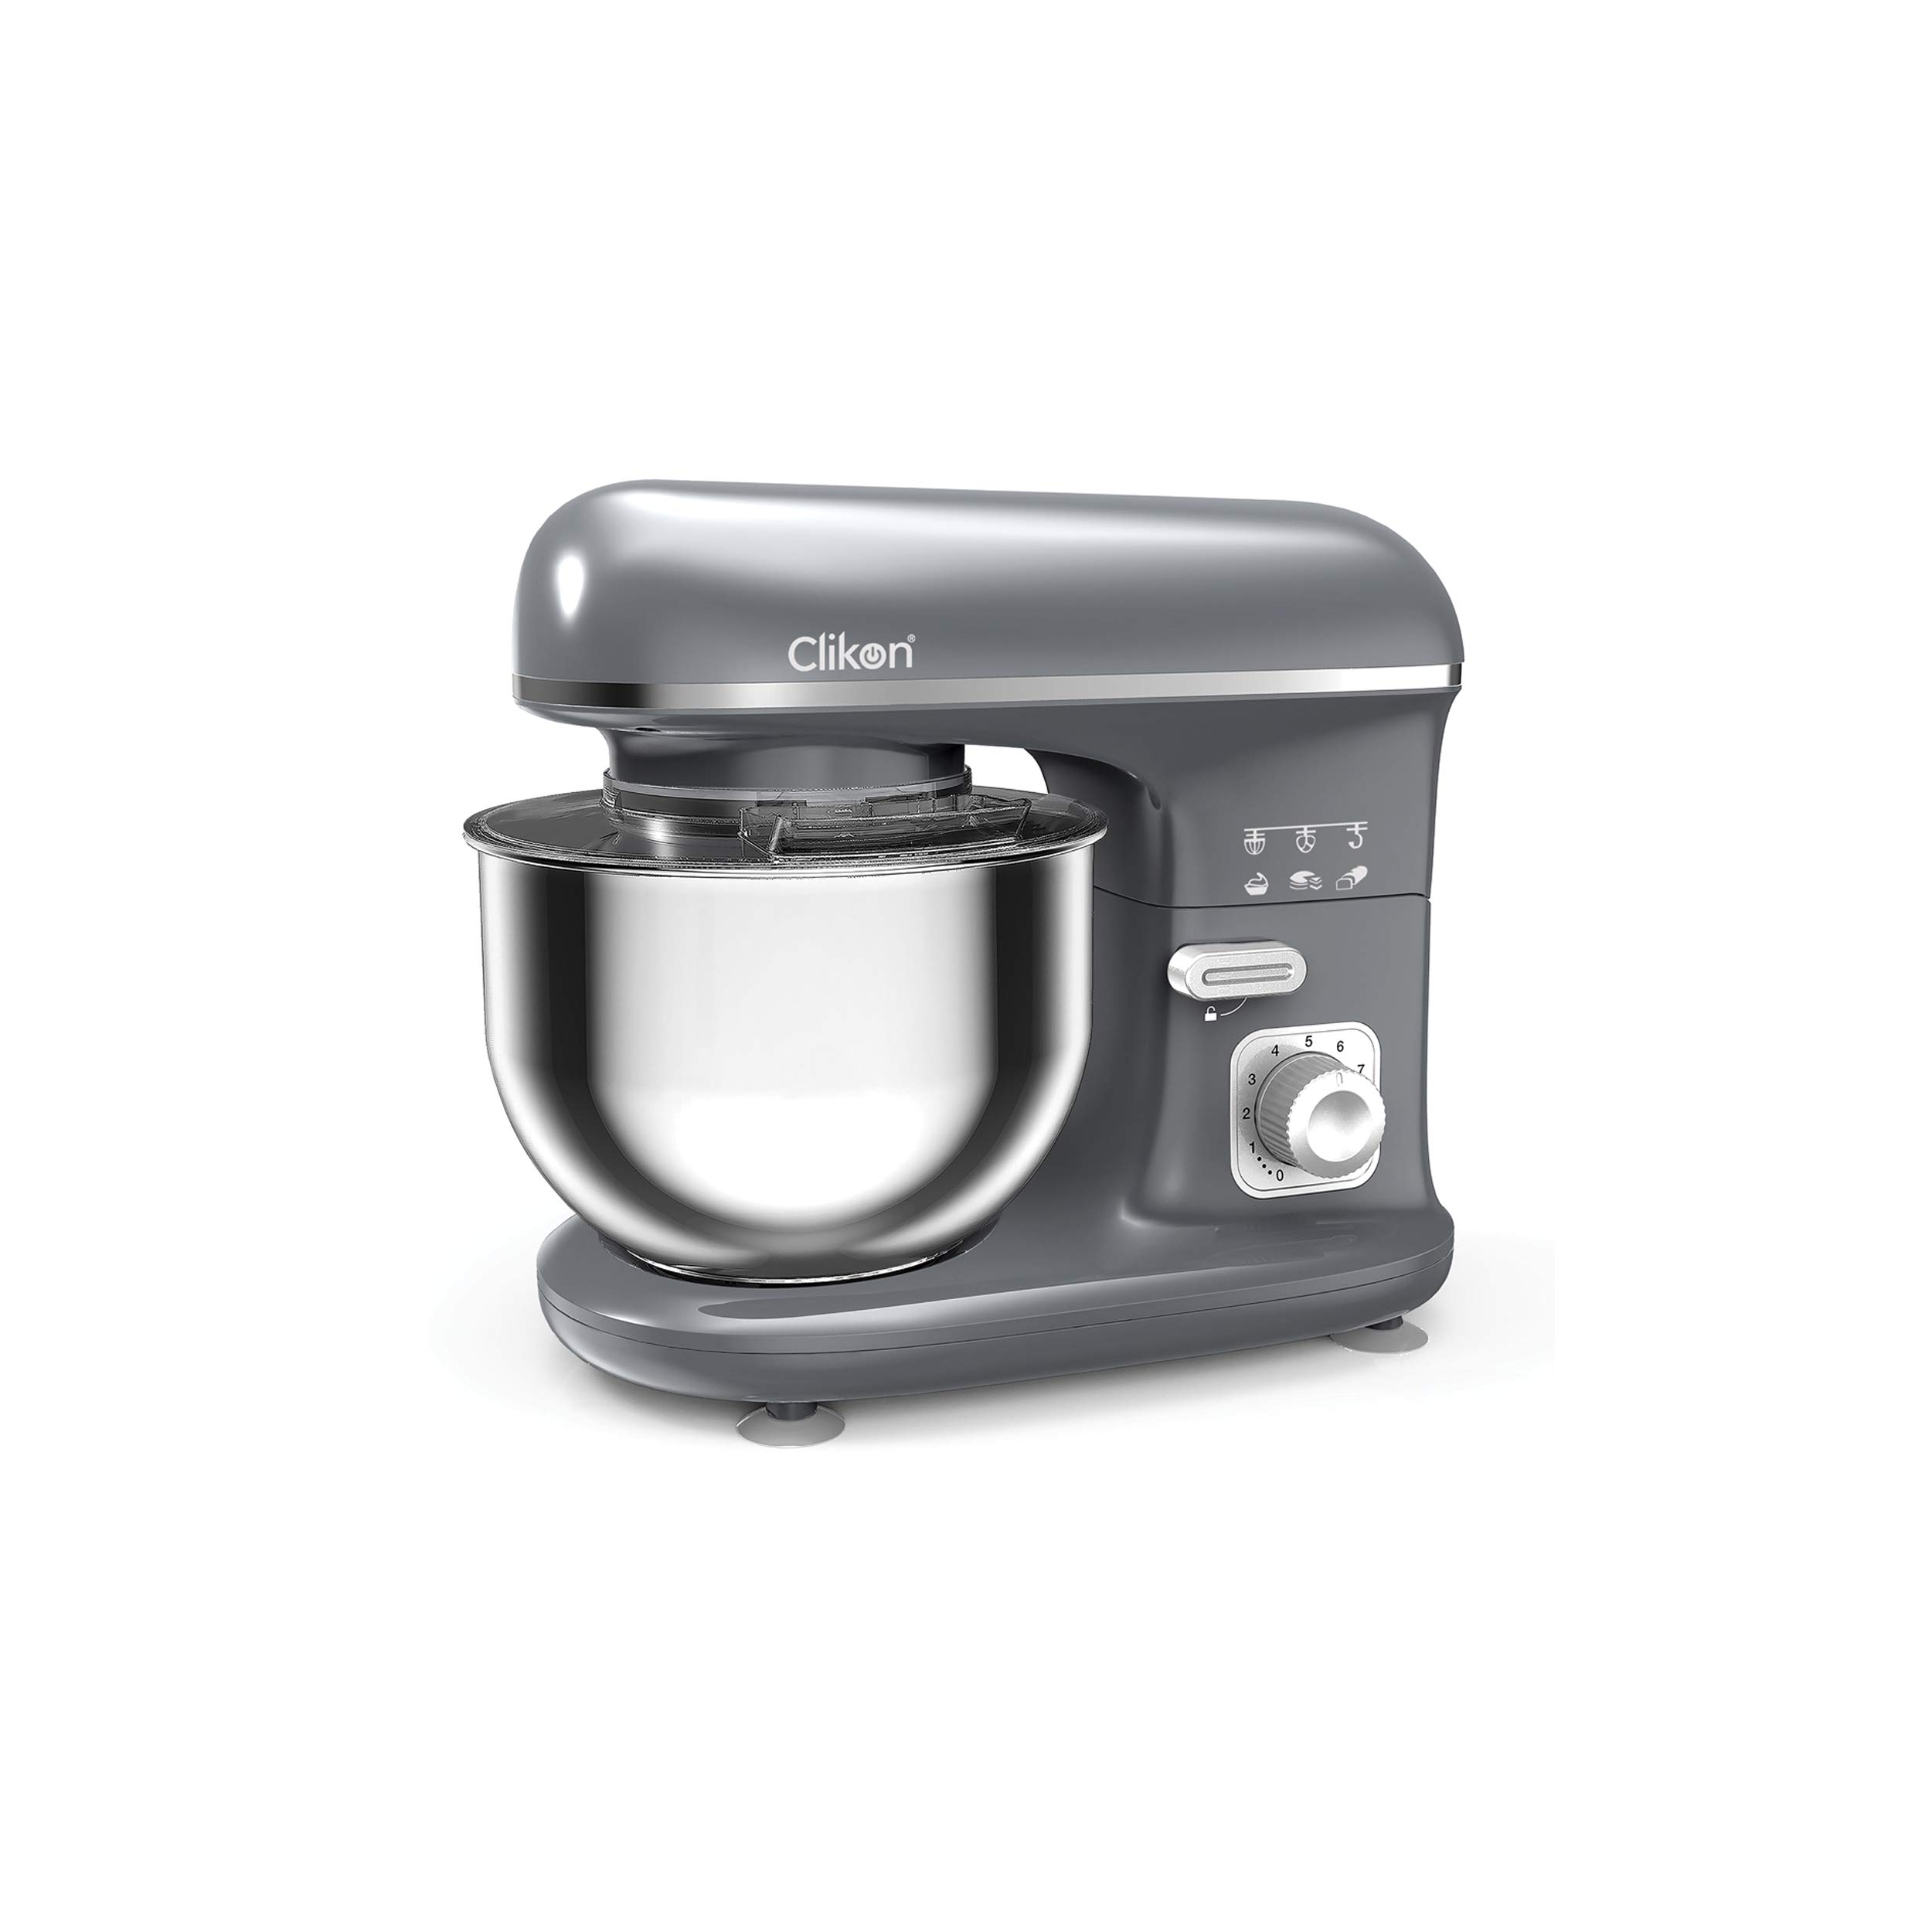 CLIKON – STAND MIXER WITH DOUGH HOOK, WIRE WHISK & FLAT BEATER ATTACHMENTS, 10 SPEED SETTINGS, LOCKABLE STAINLESS STEEL BOWL, TILT BACK DESIGN, SUCTION FEET GRIPS, 600 WATTS – CK2615 (Grey)